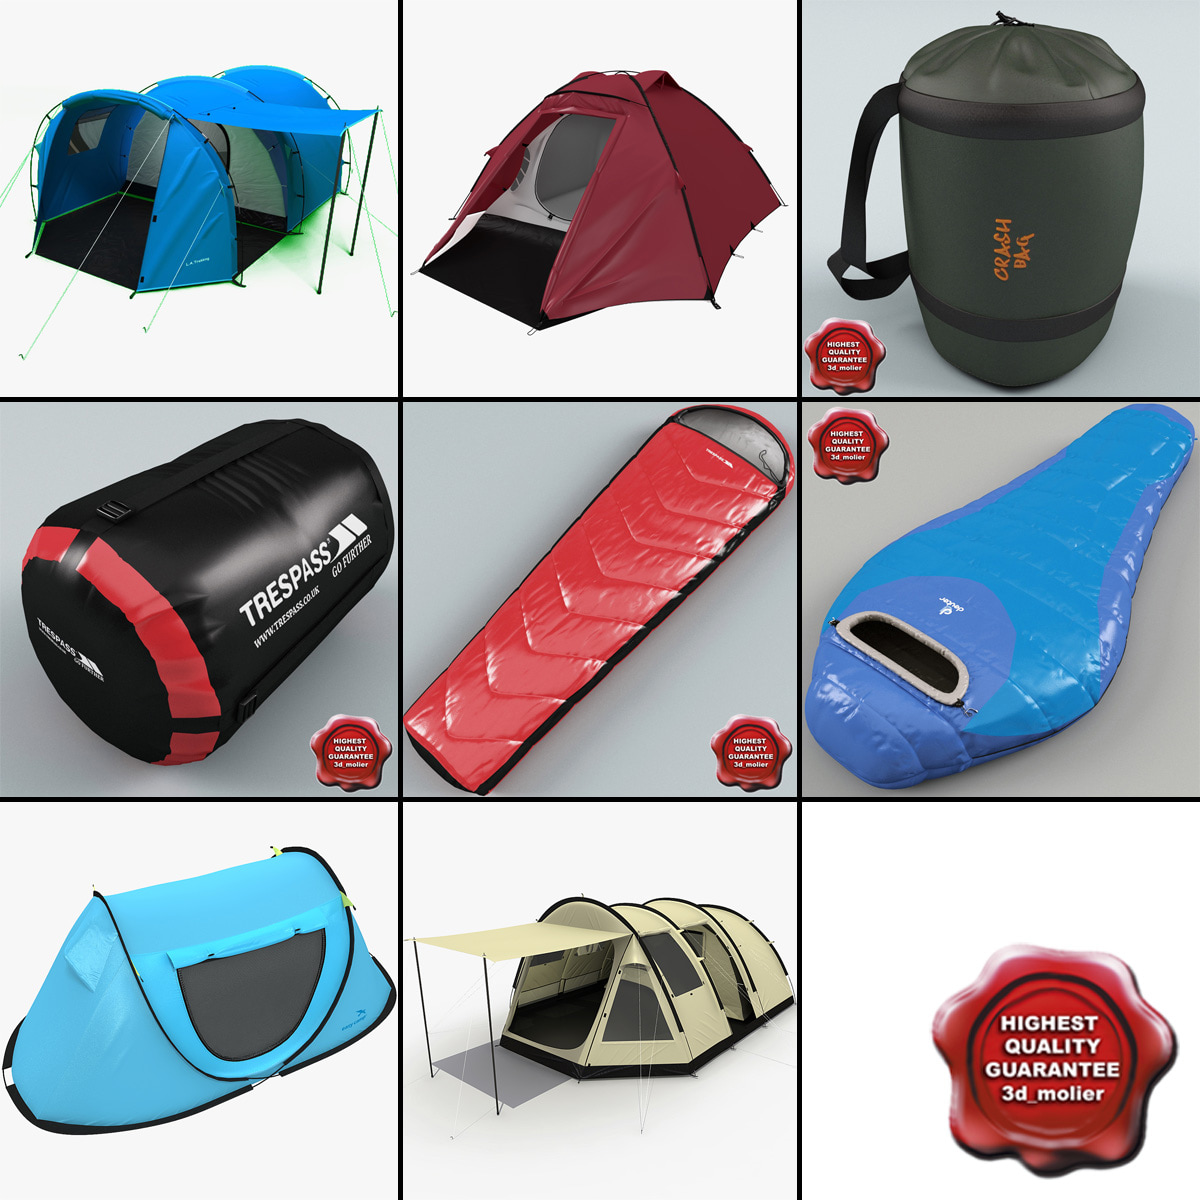 Tents_and_Sleeping_Bags_Collection_000.jpg